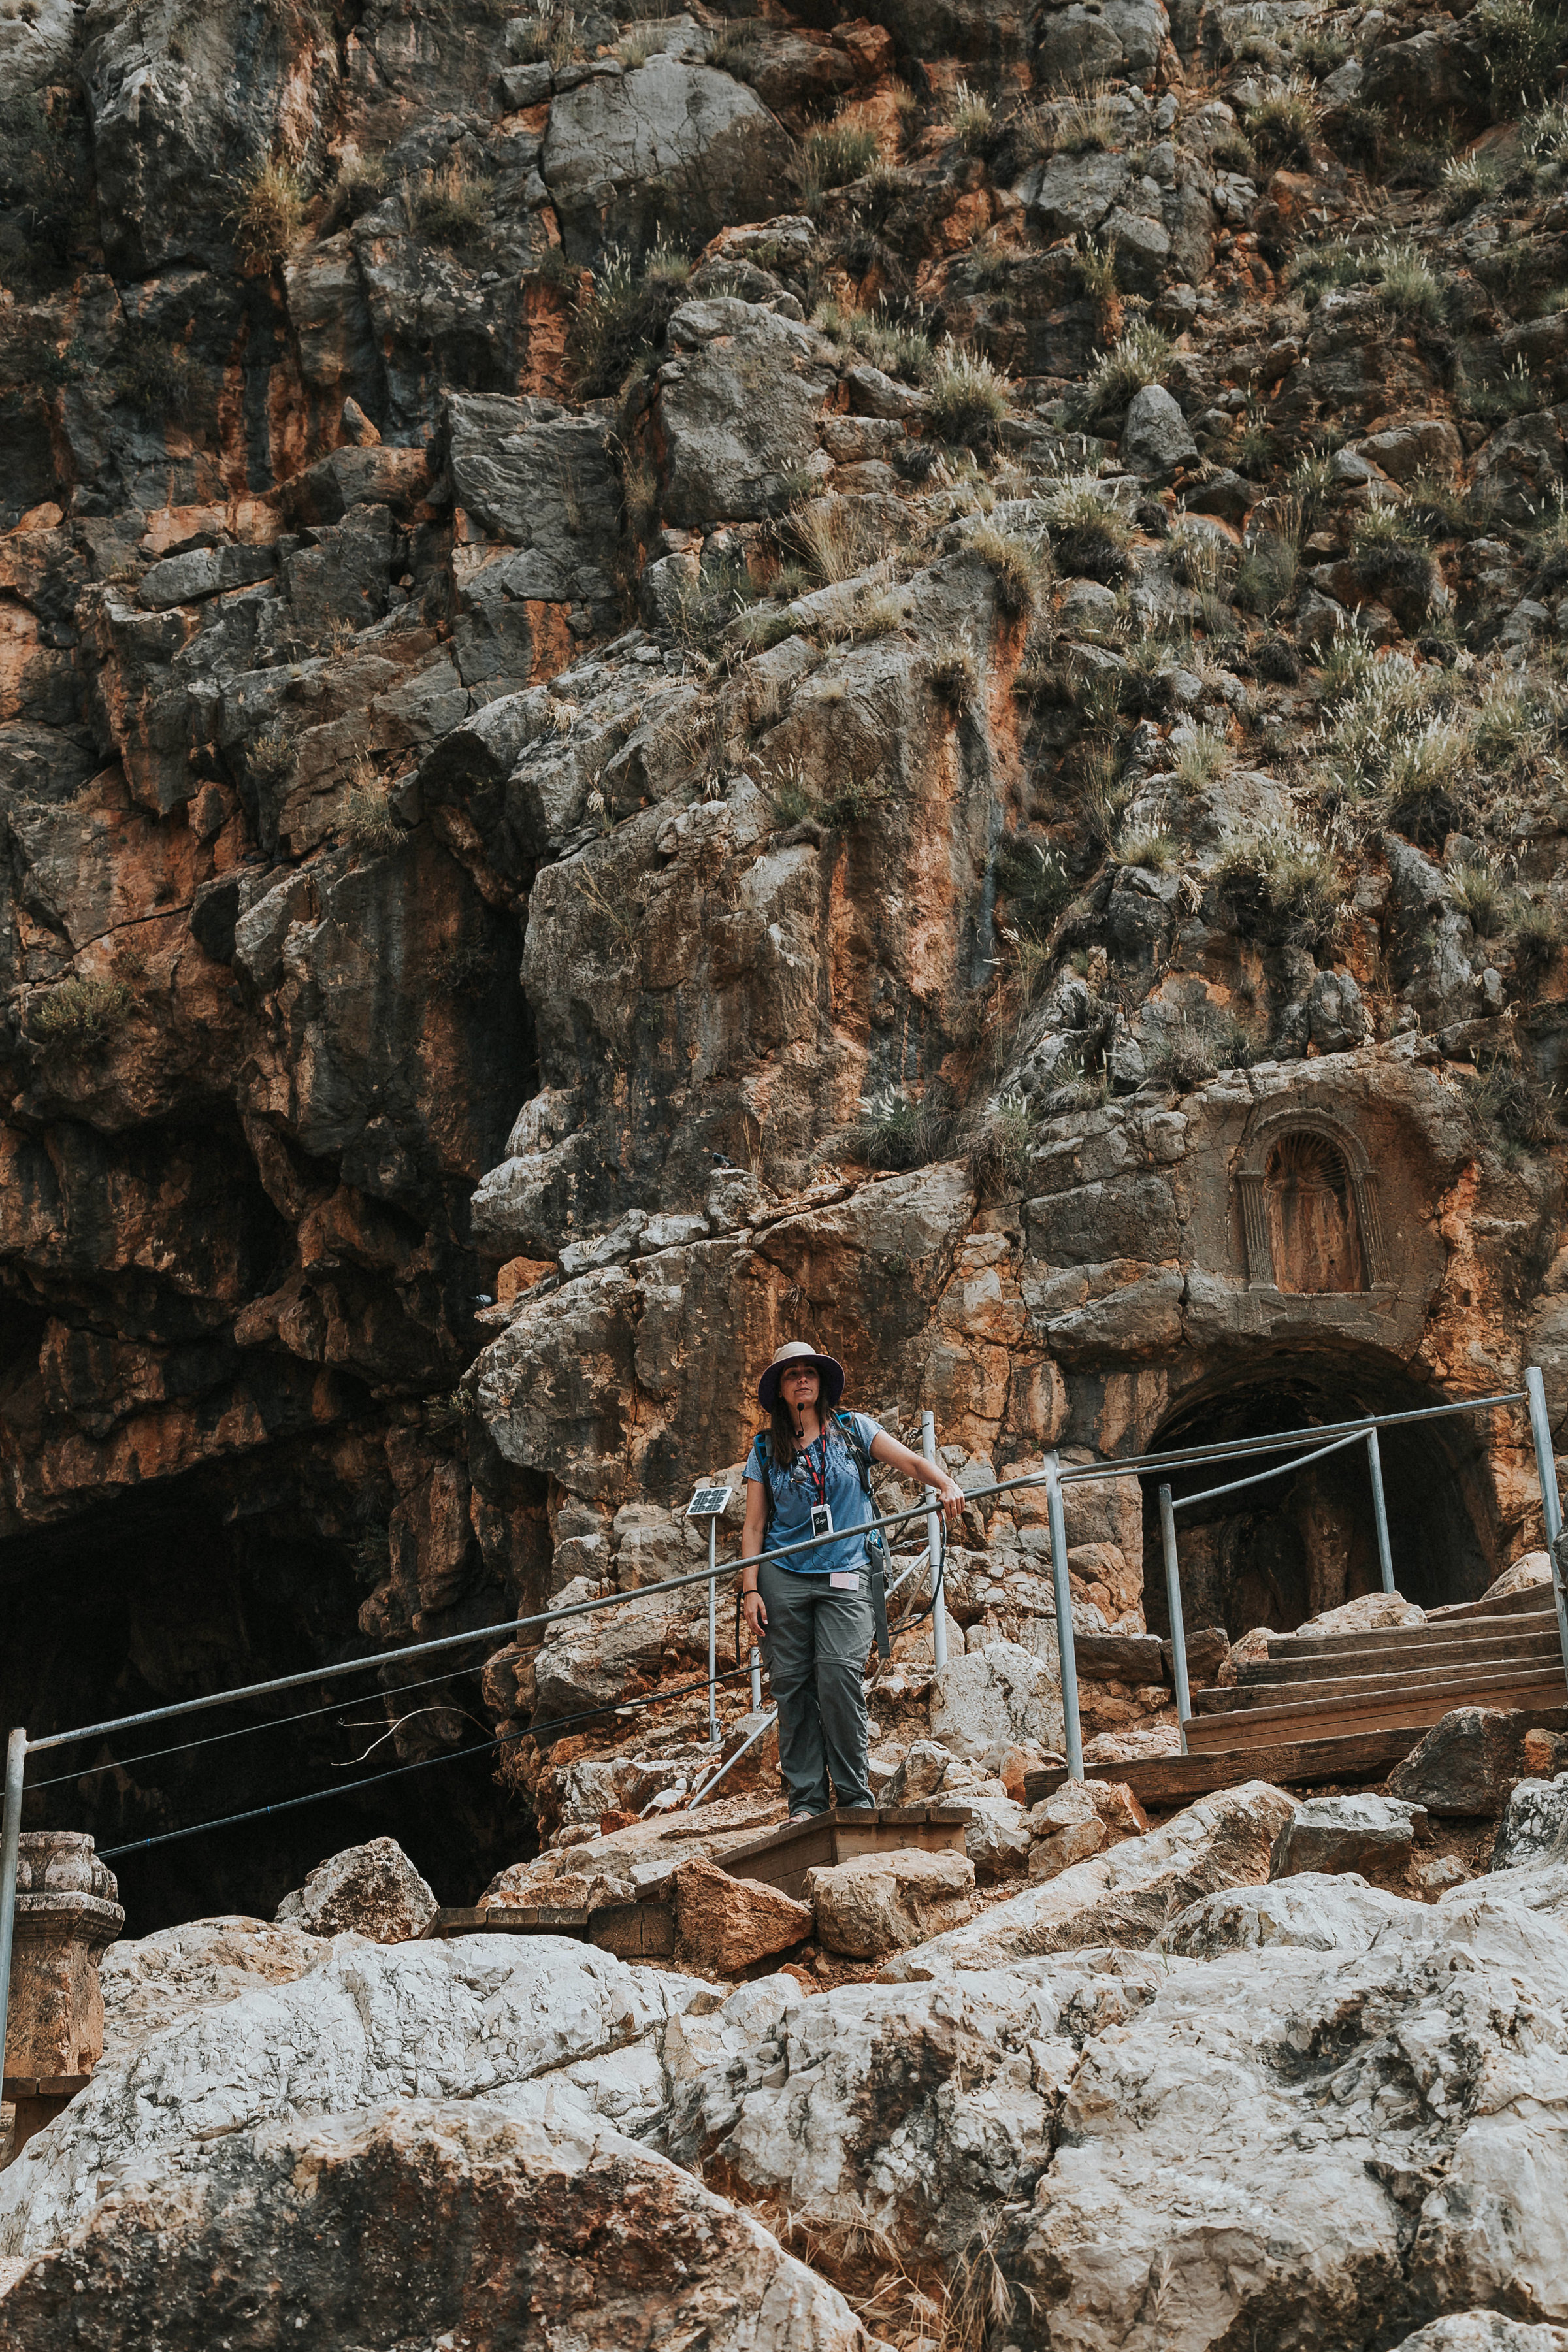 It's one thing to go to a country and walk through their world, yet it's another for someone to first-hand welcome you with love into their home and culture. That was Arbel, our guide, in a nutshell.